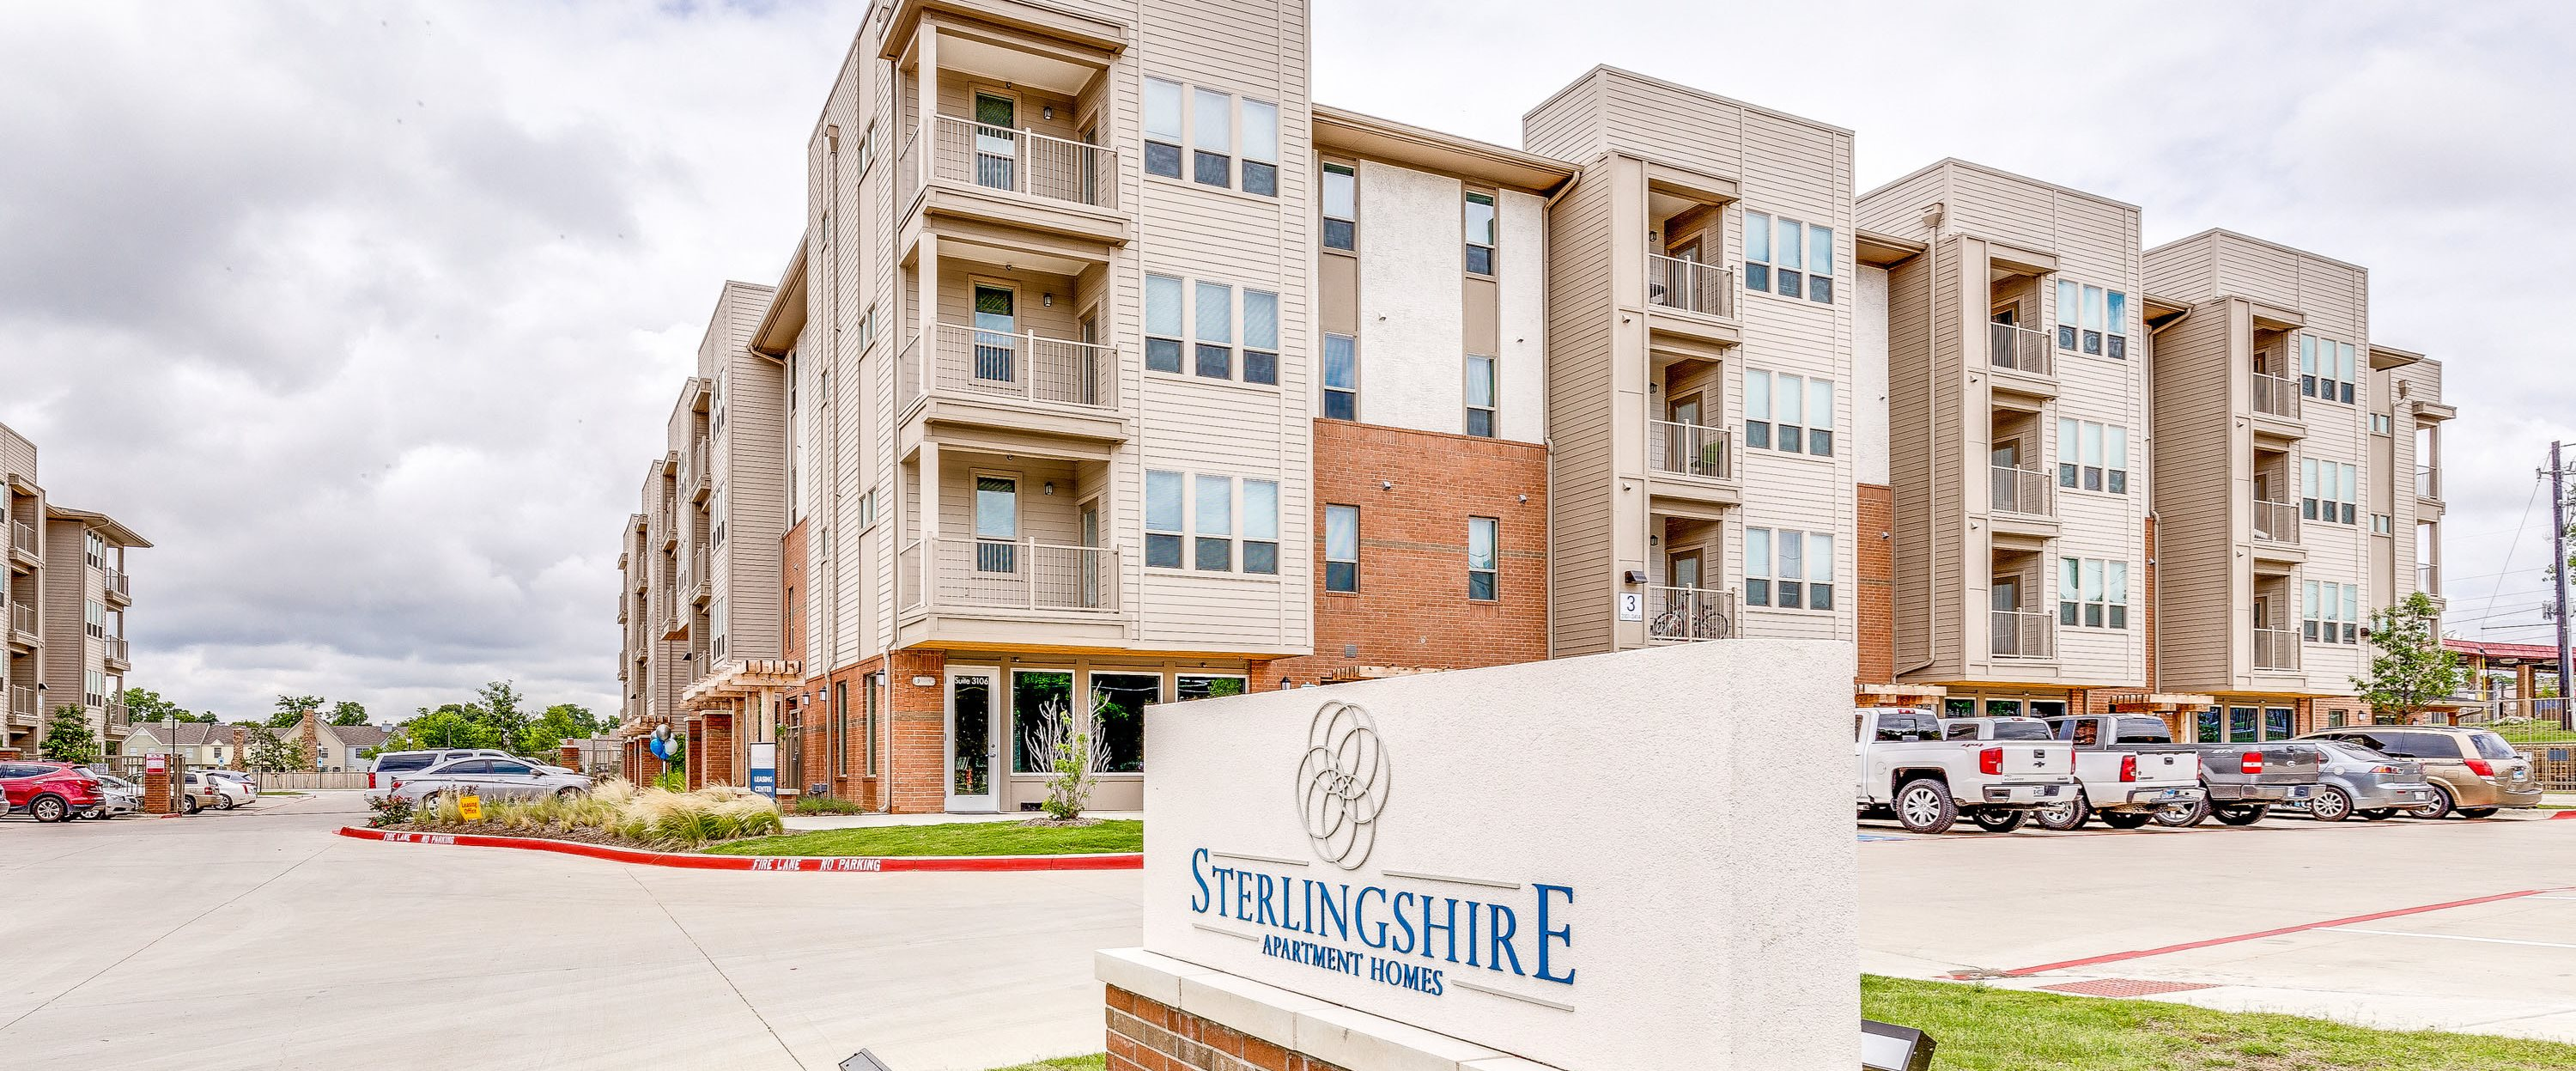 sterlingshire apartments in dallas tx